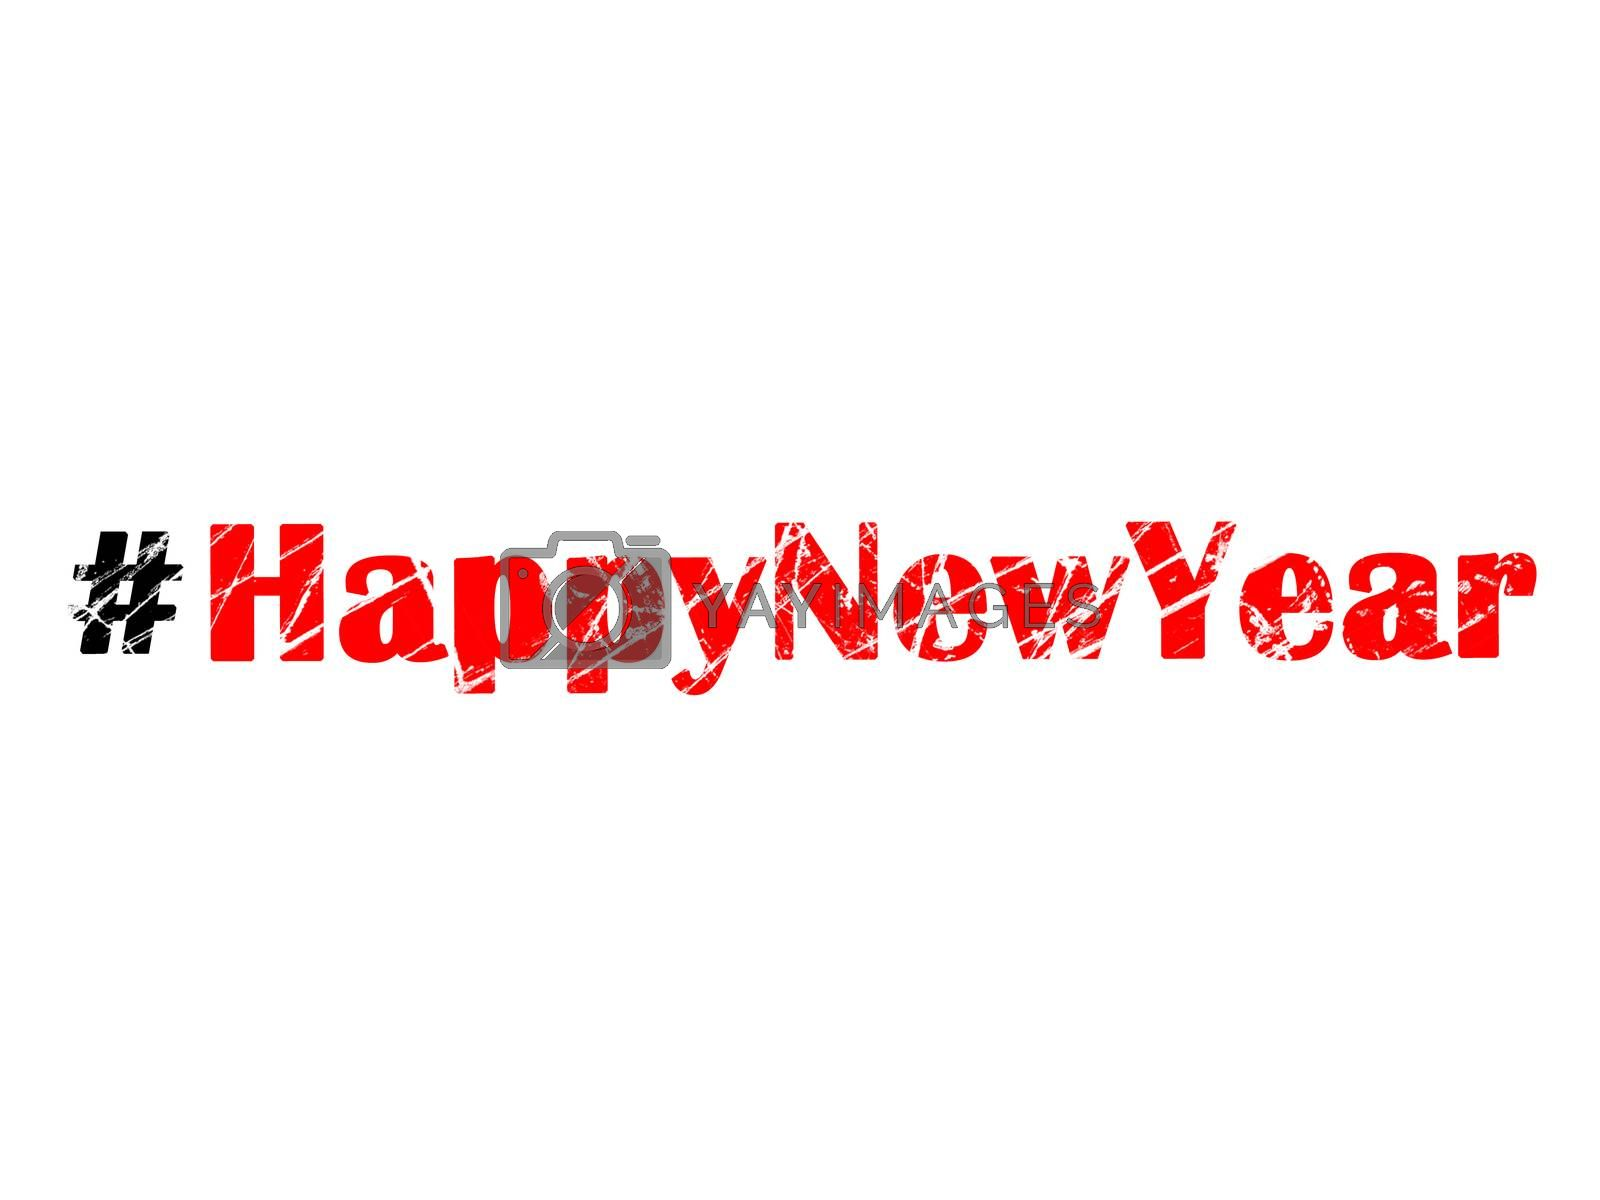 Hashtag Happy New Year on white background by Vaidas Bucys